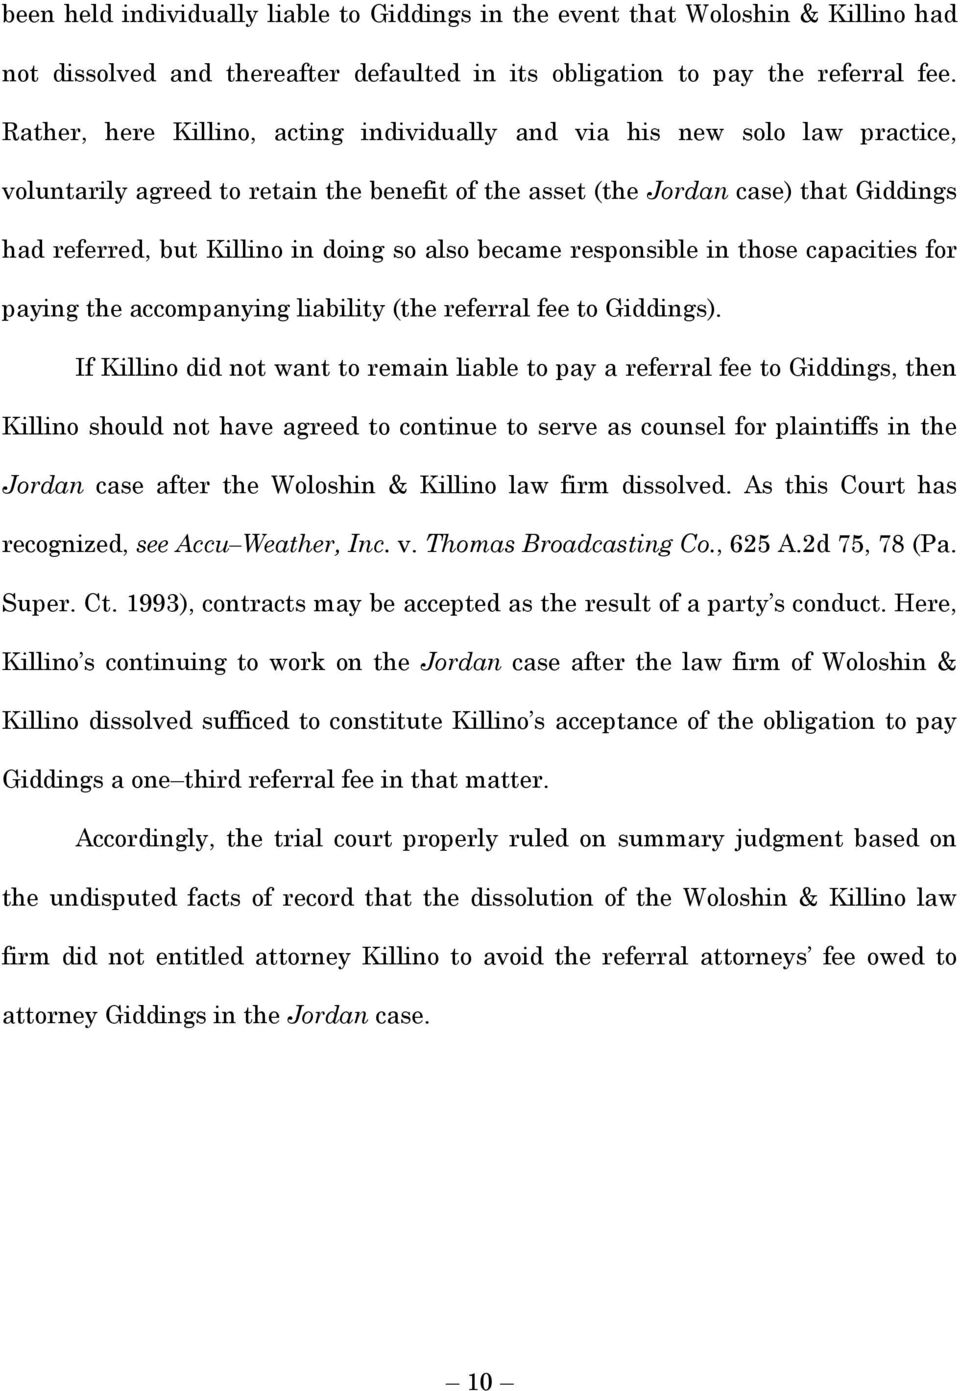 so also became responsible in those capacities for paying the accompanying liability (the referral fee to Giddings).